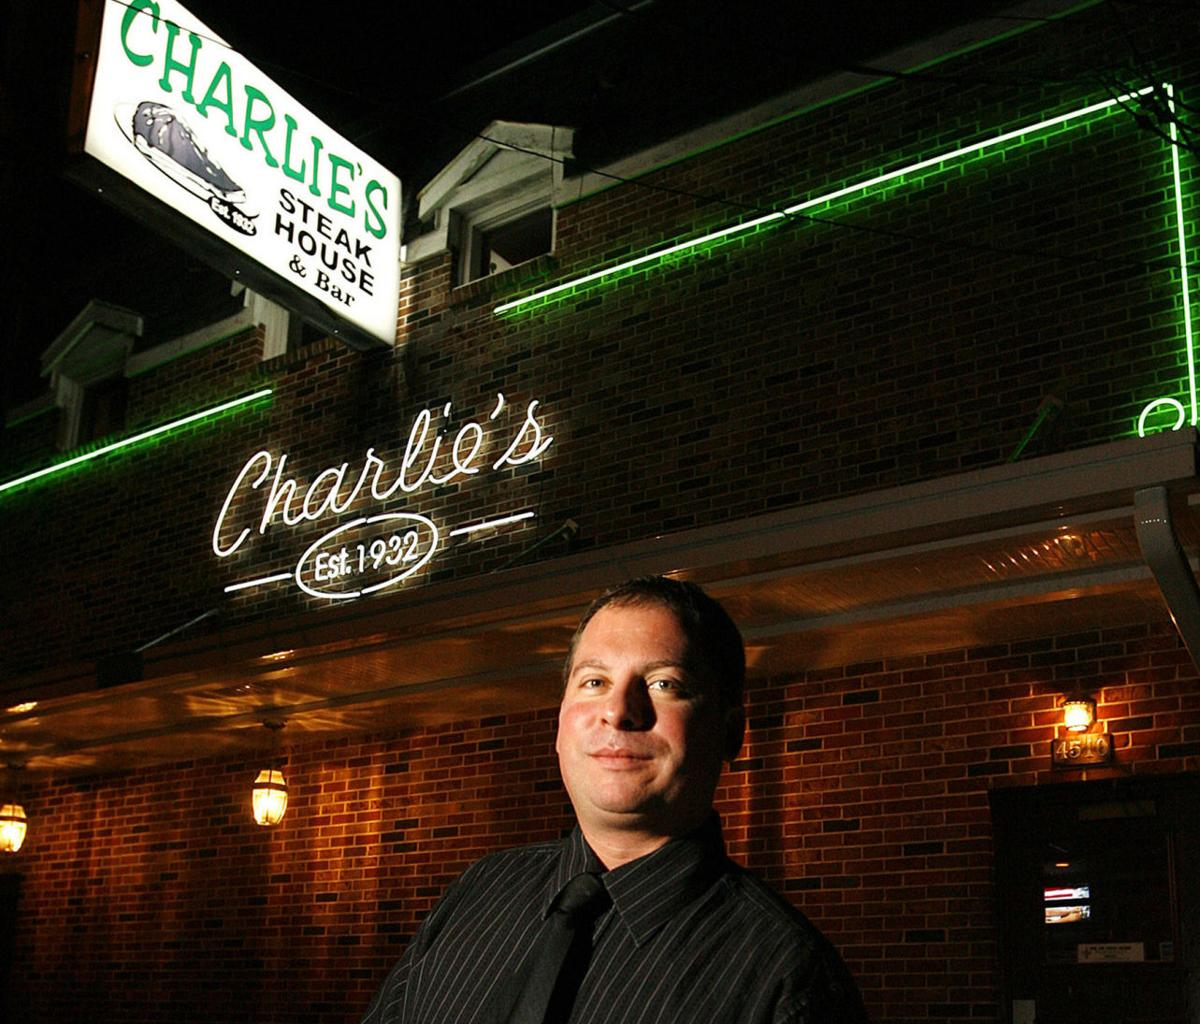 Charlie's Steak House (copy)